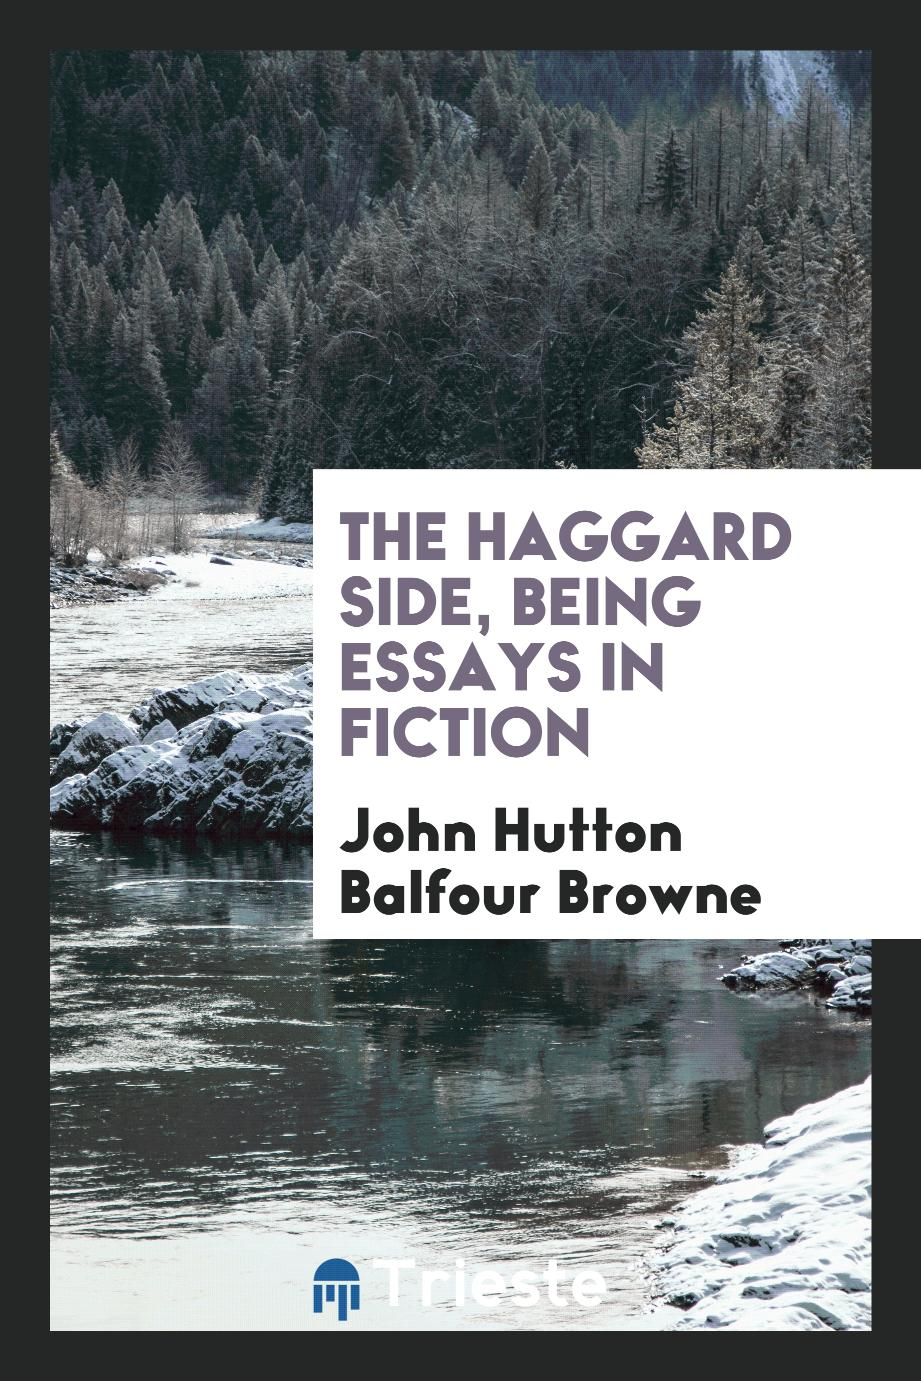 The Haggard Side, Being Essays in Fiction